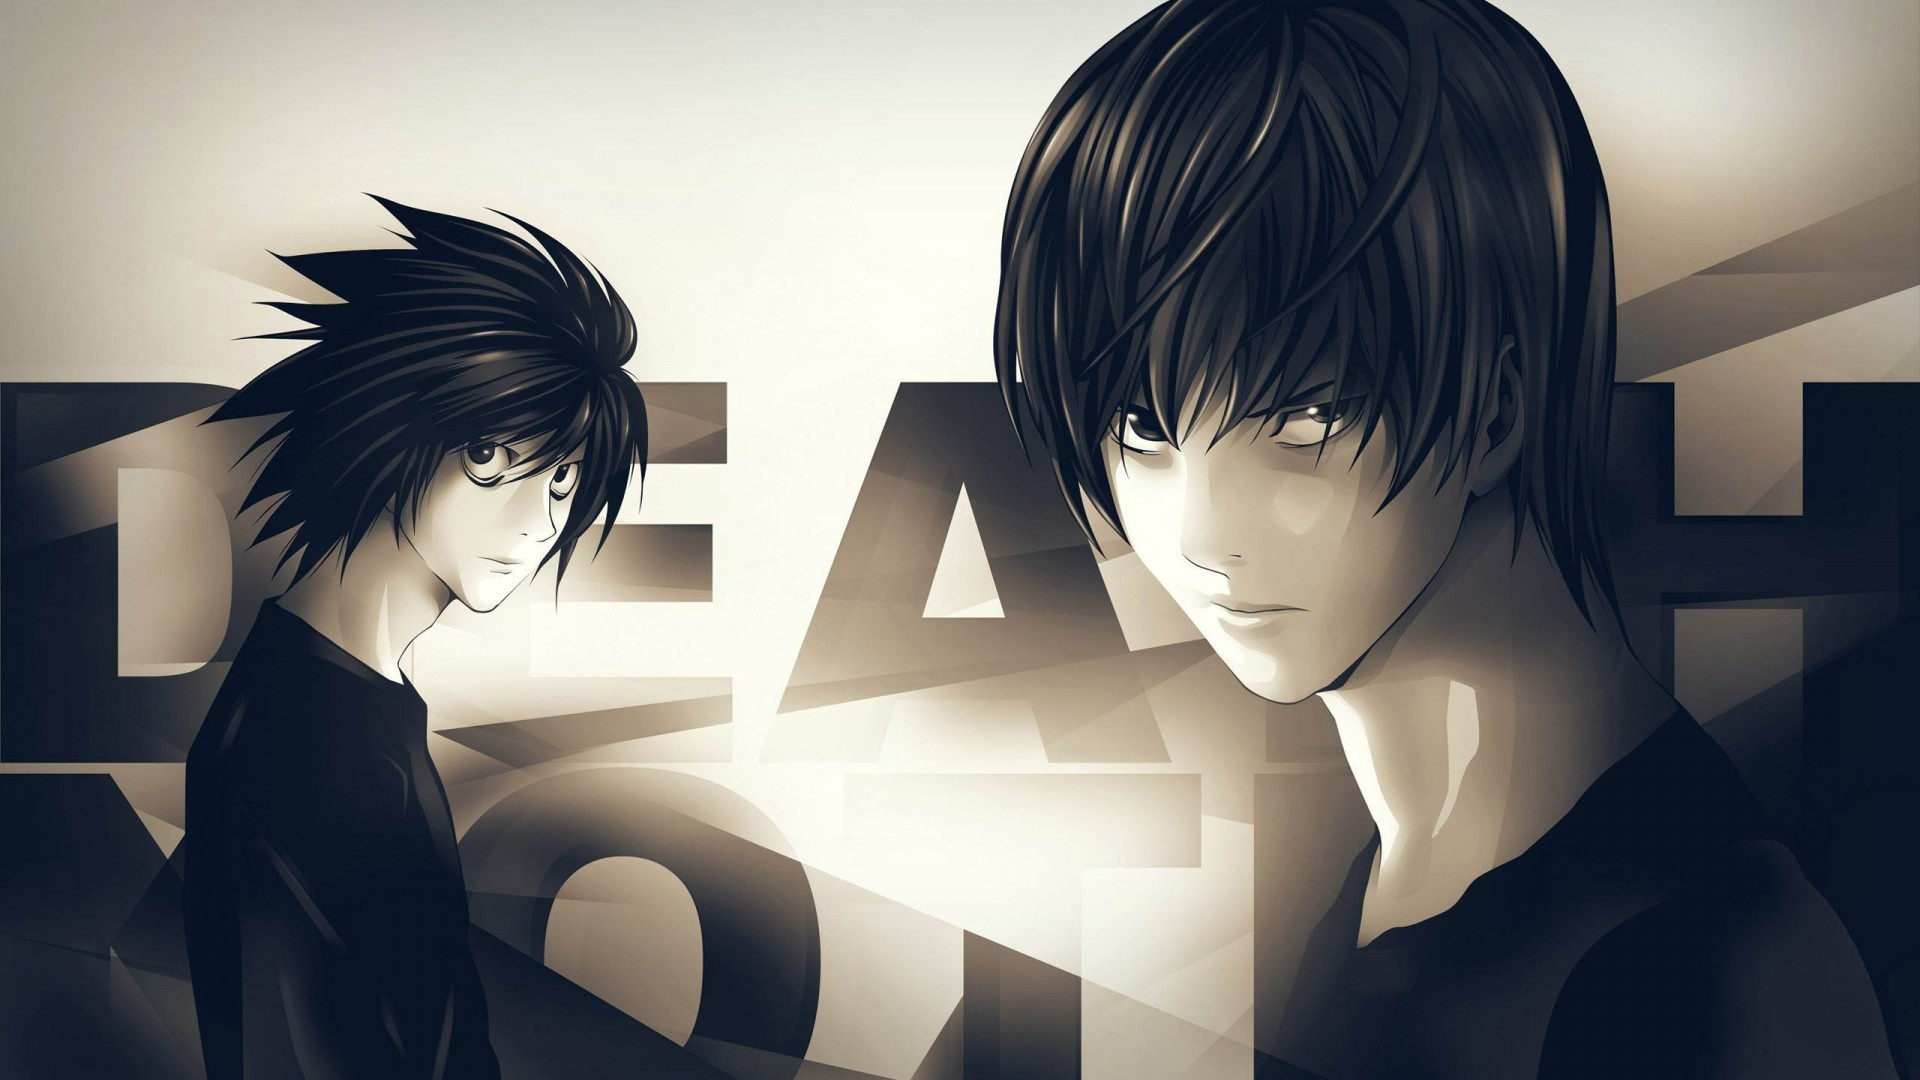 Wallpaper L y Light Yagami Images